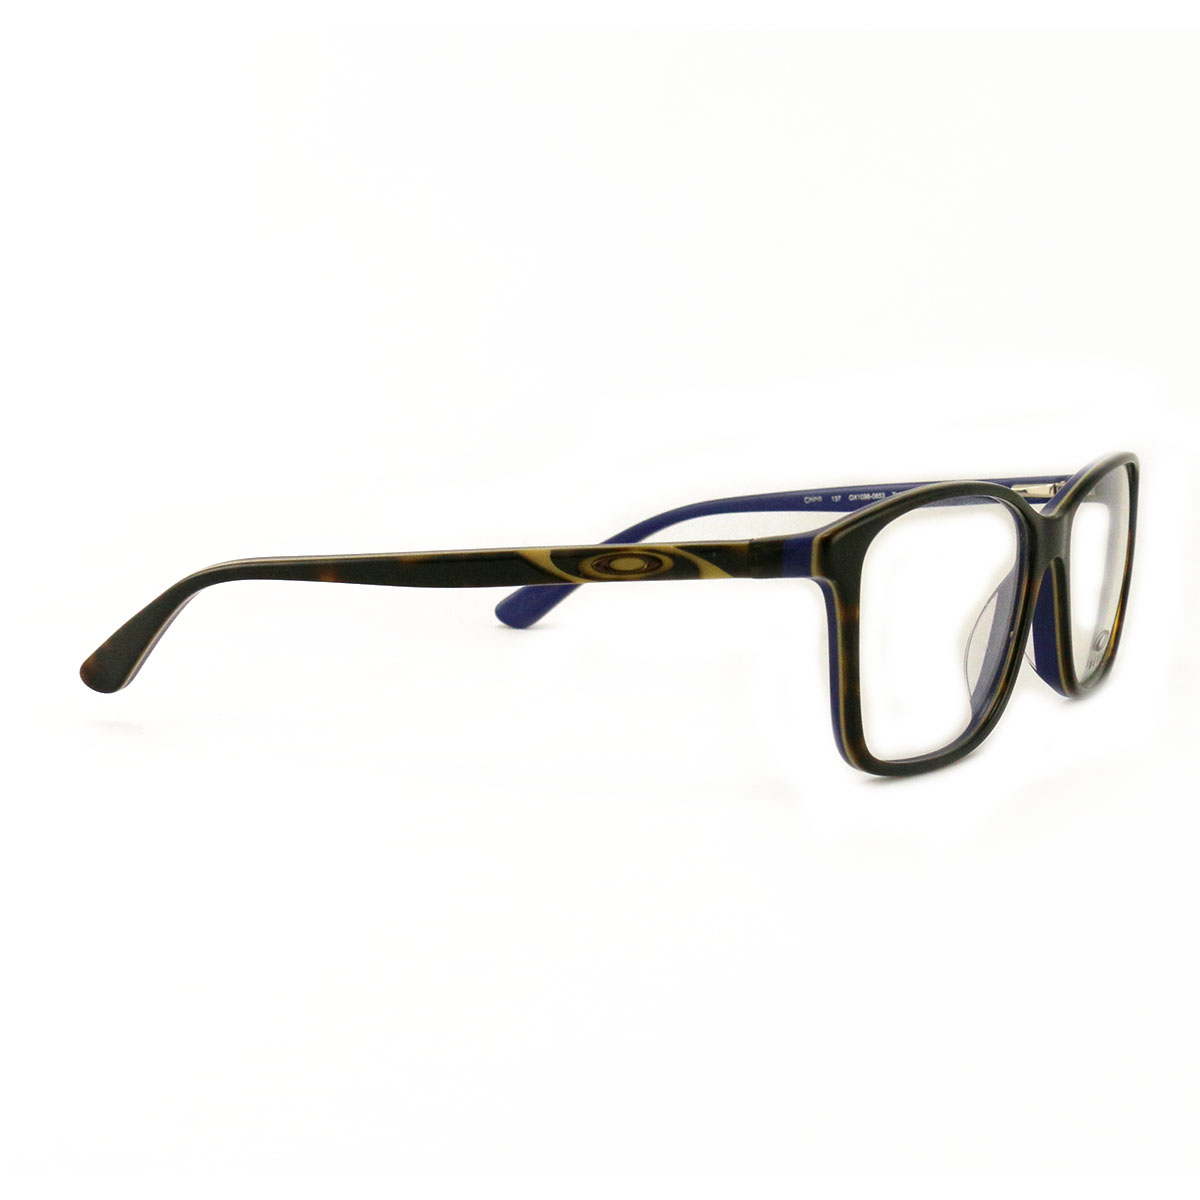 638eb0531cd Oakley Tortoise Night Eyeglasses OX1098-06 Demo Lens 53 15 137 ...